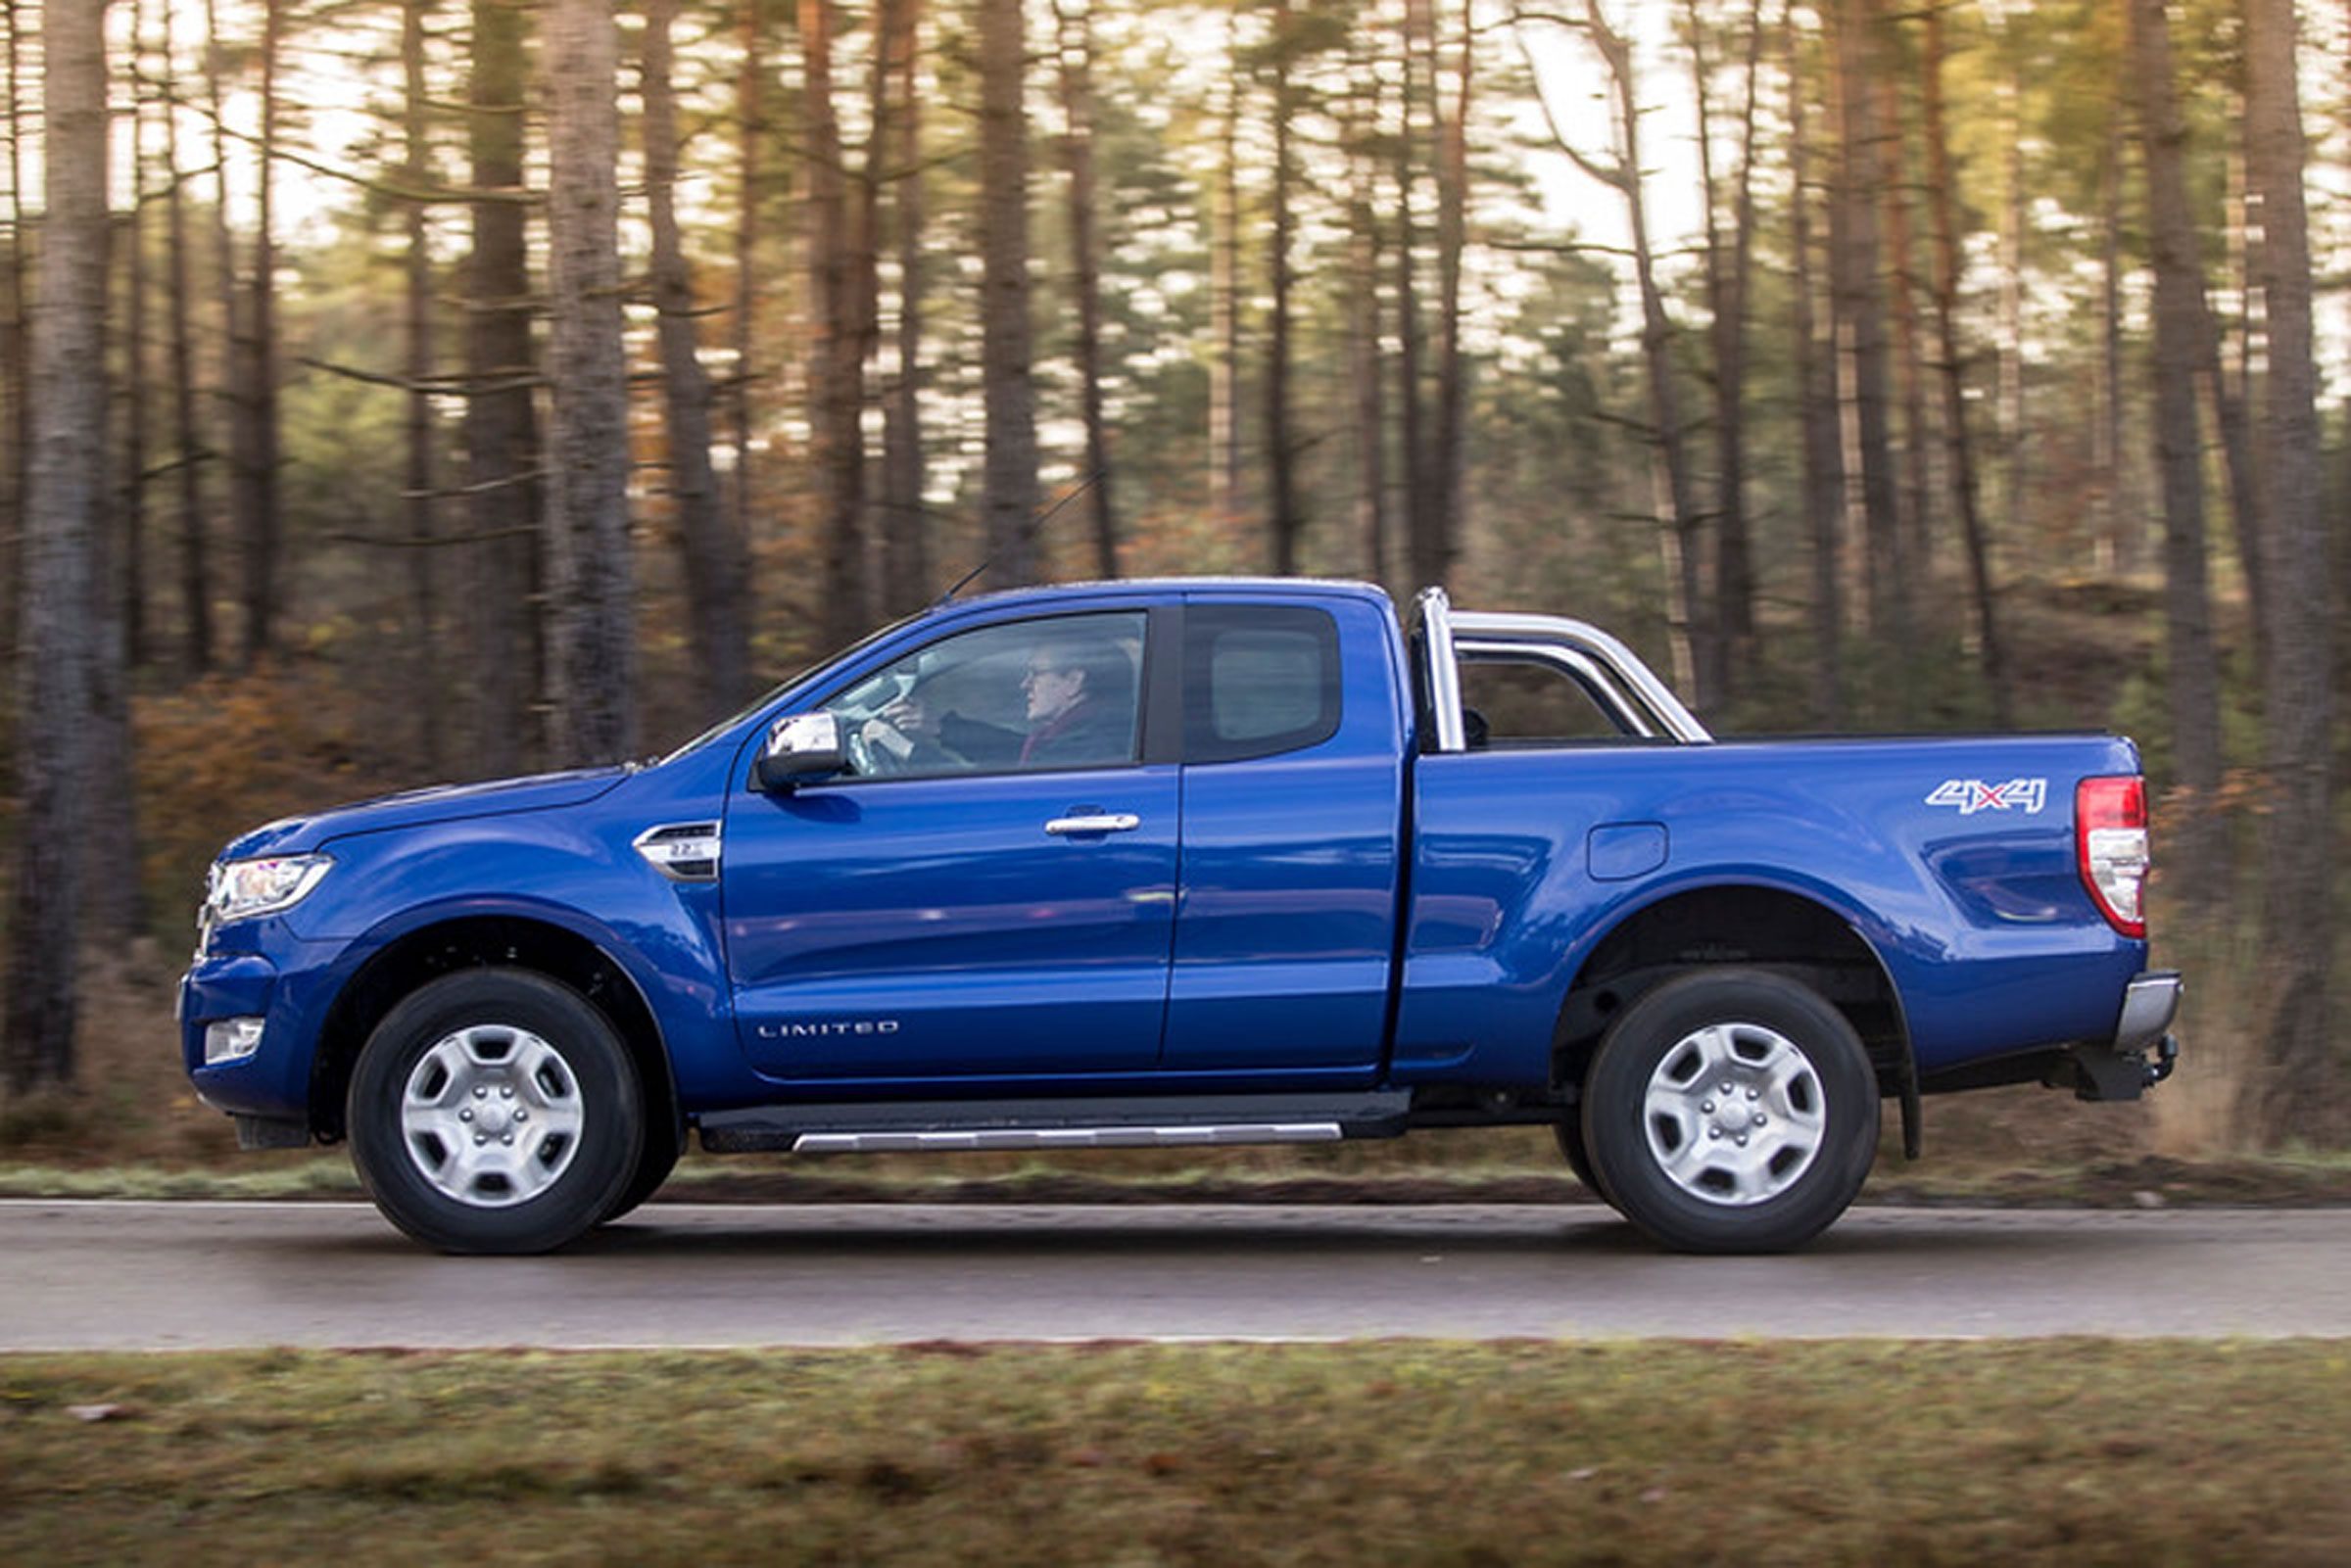 Ford Ranger Super Cab 2 Limited 4x4 Side To